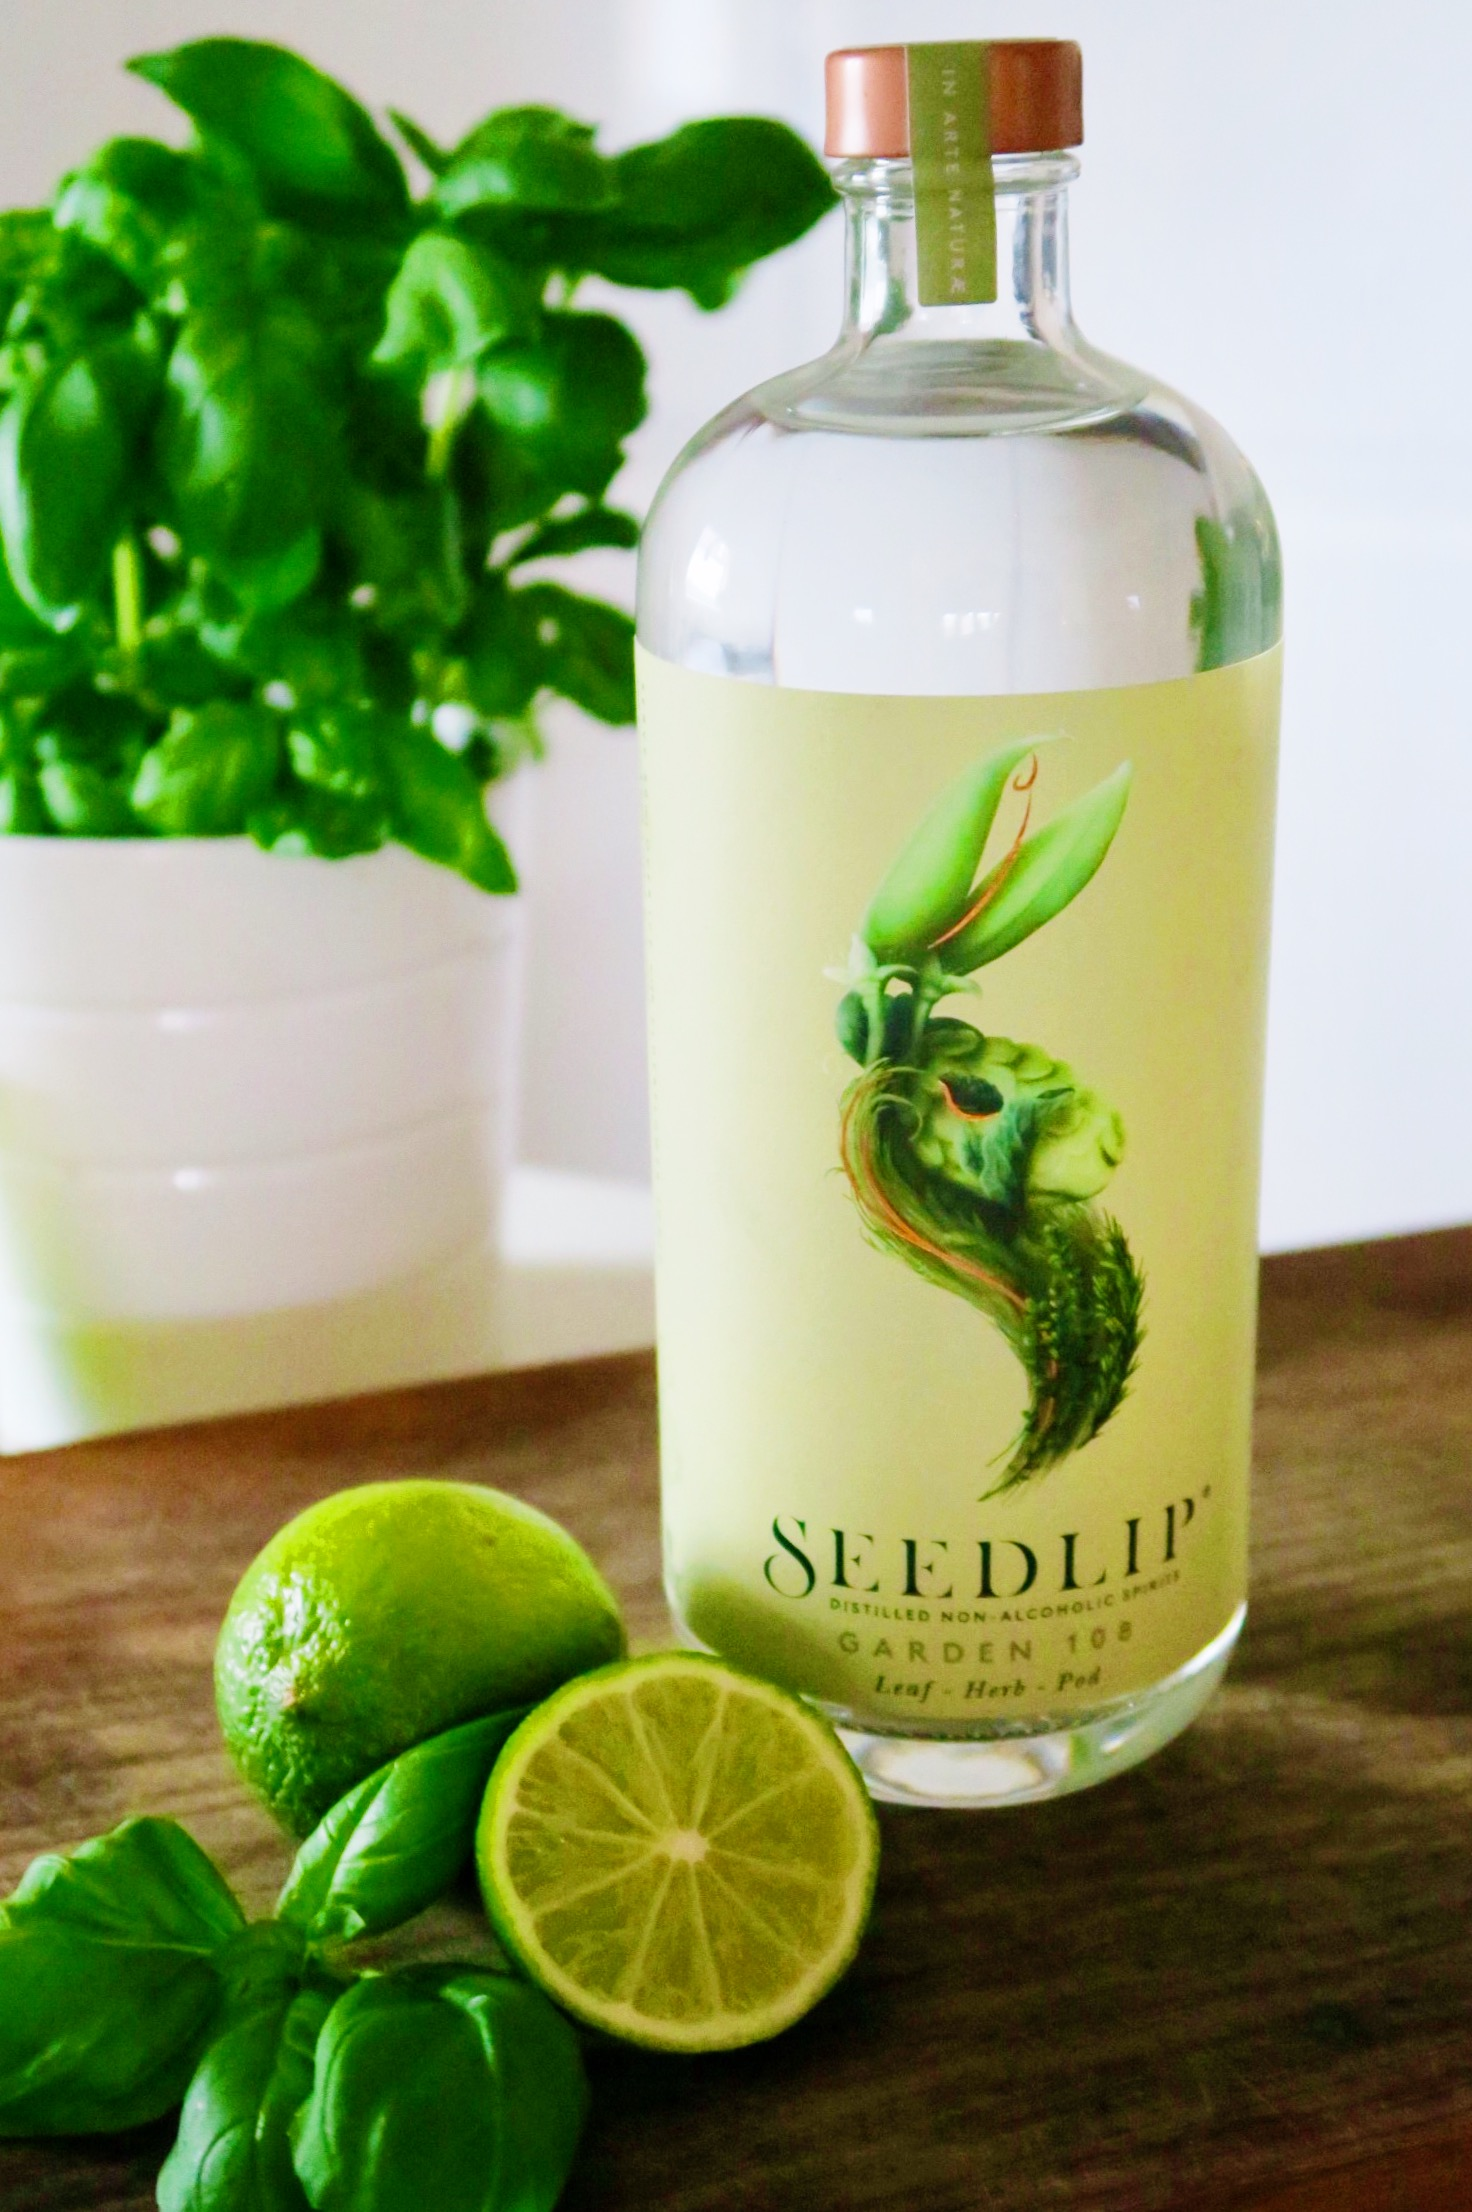 Seedlip is most definitely an acquired taste but, then again, so are most spirits. £26 from Tesco.